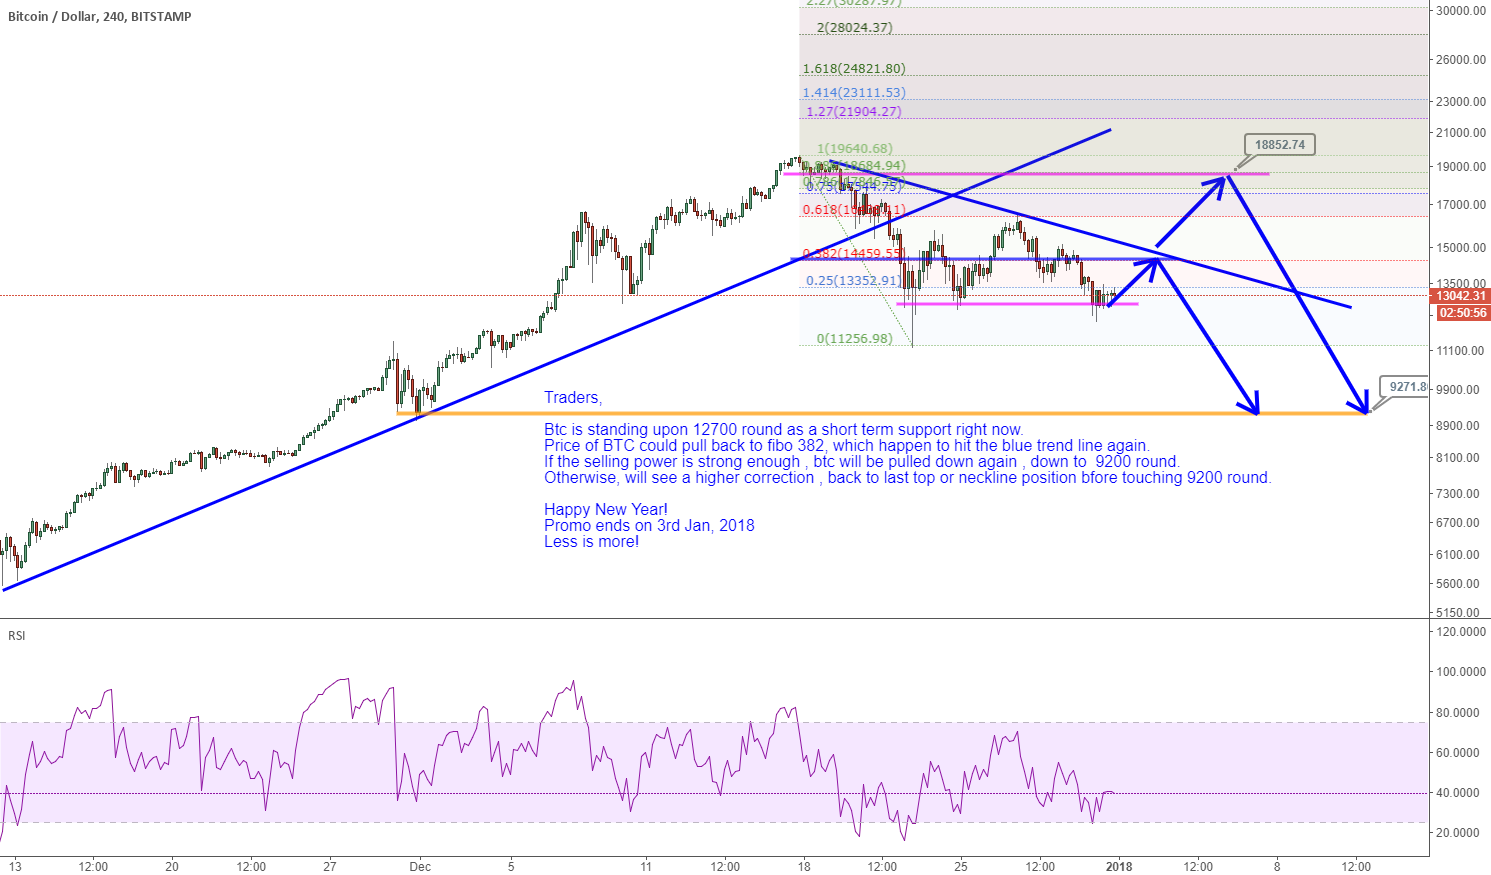 BTCUSD: Correction back to fibo 382 before touching 9200